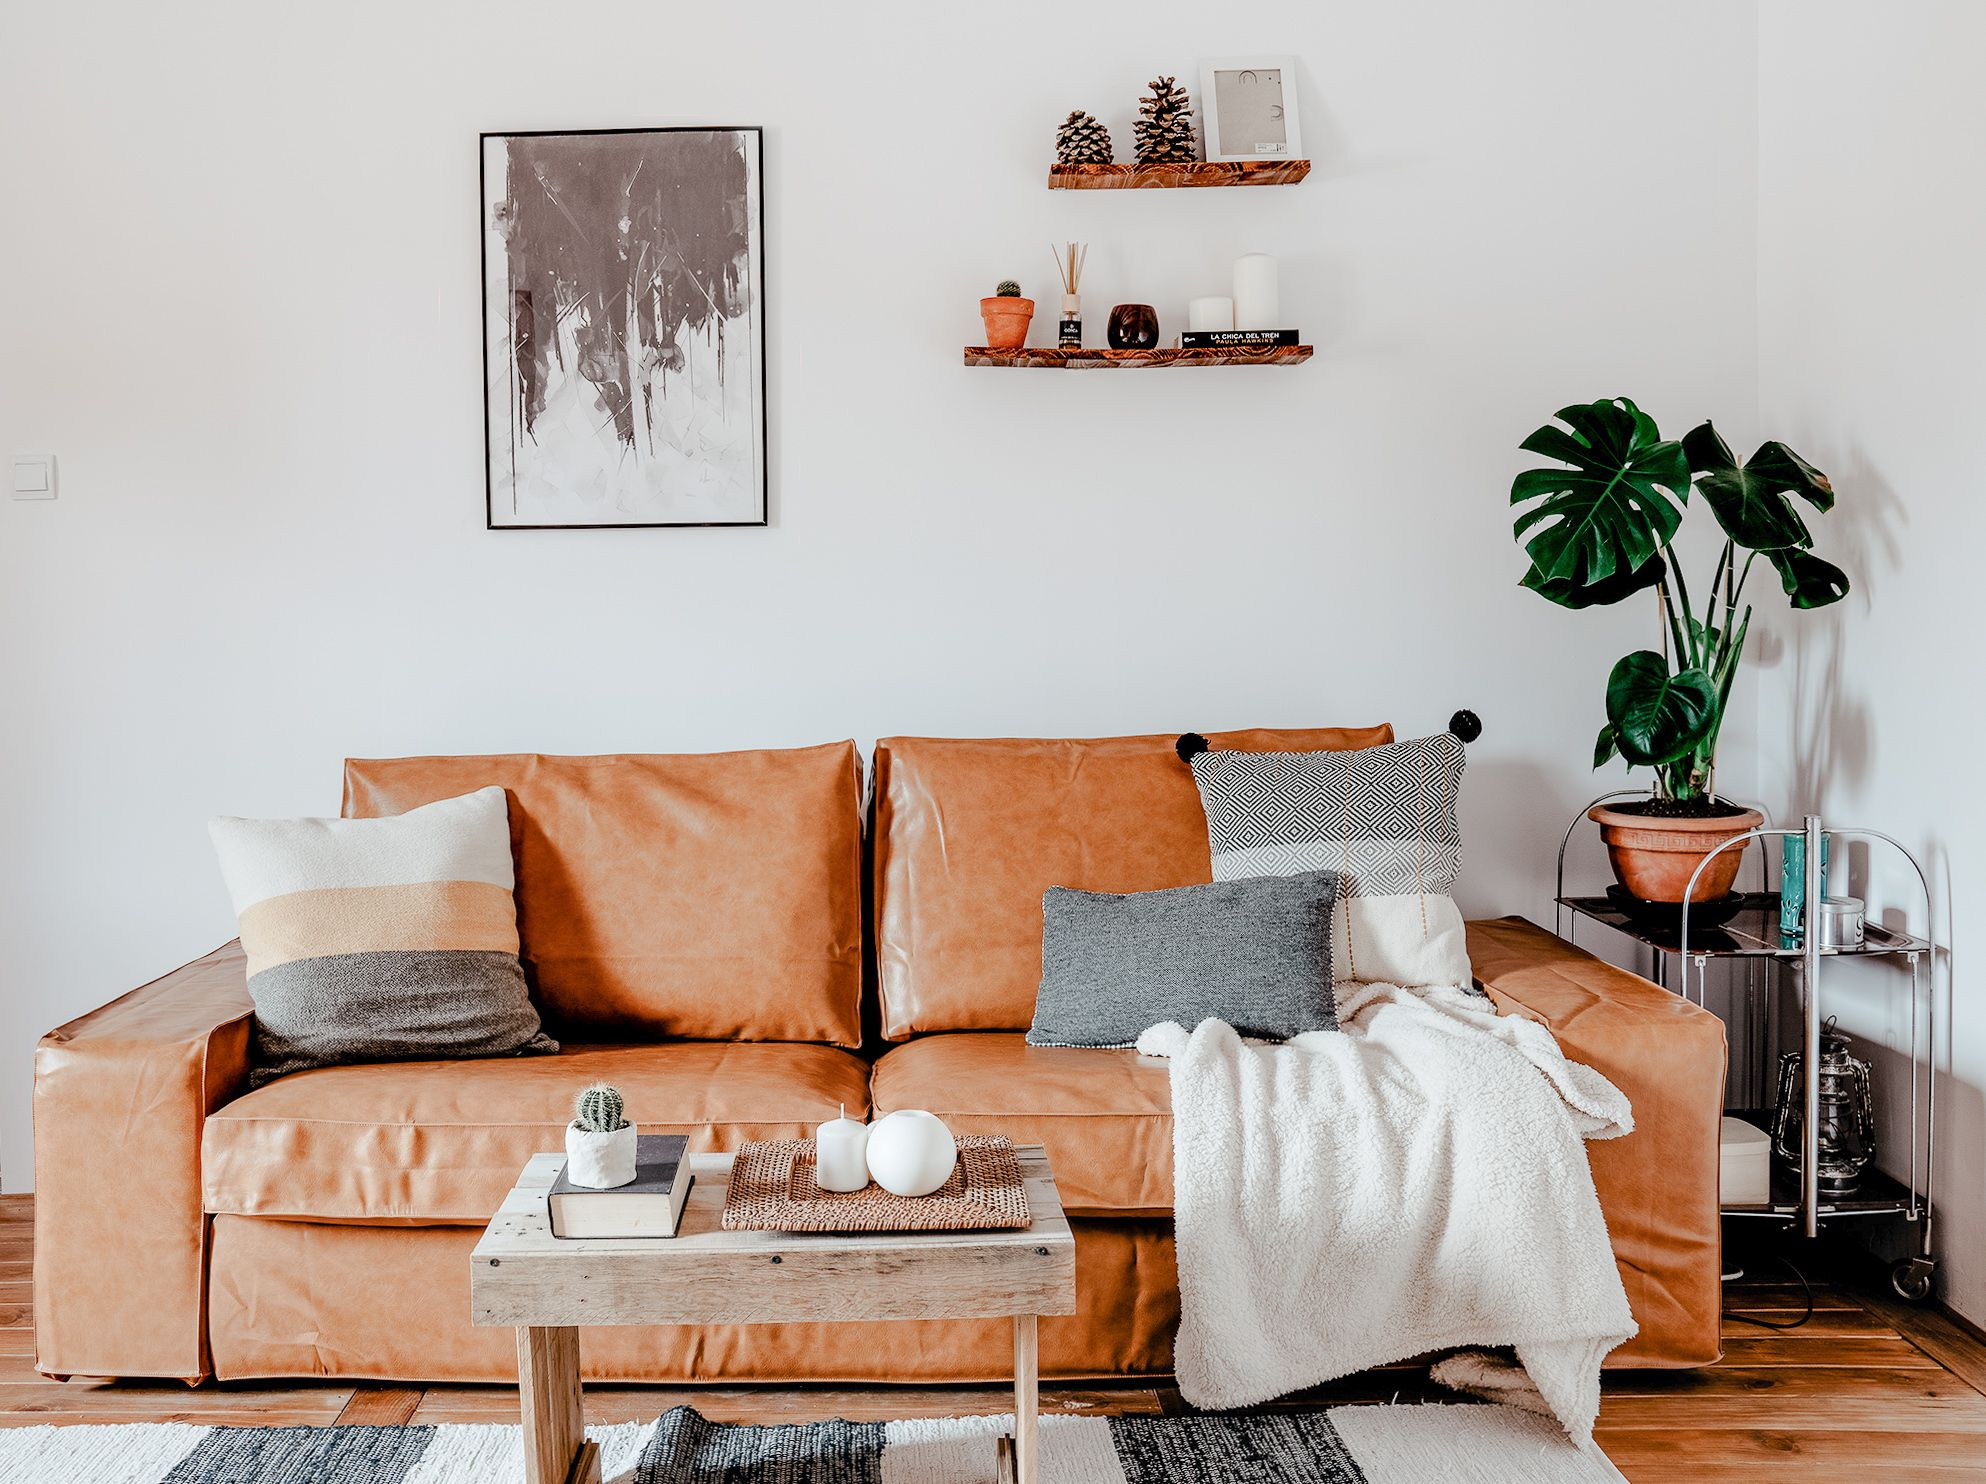 Full Size of Cheap Sofa Alternatives Togo Reddit For Small Spaces Bed Couch Living Room 6 Better To Throwing Away Your Old Blau Polster Grau Weiß Leder Federkern Bezug Sofa Sofa Alternatives